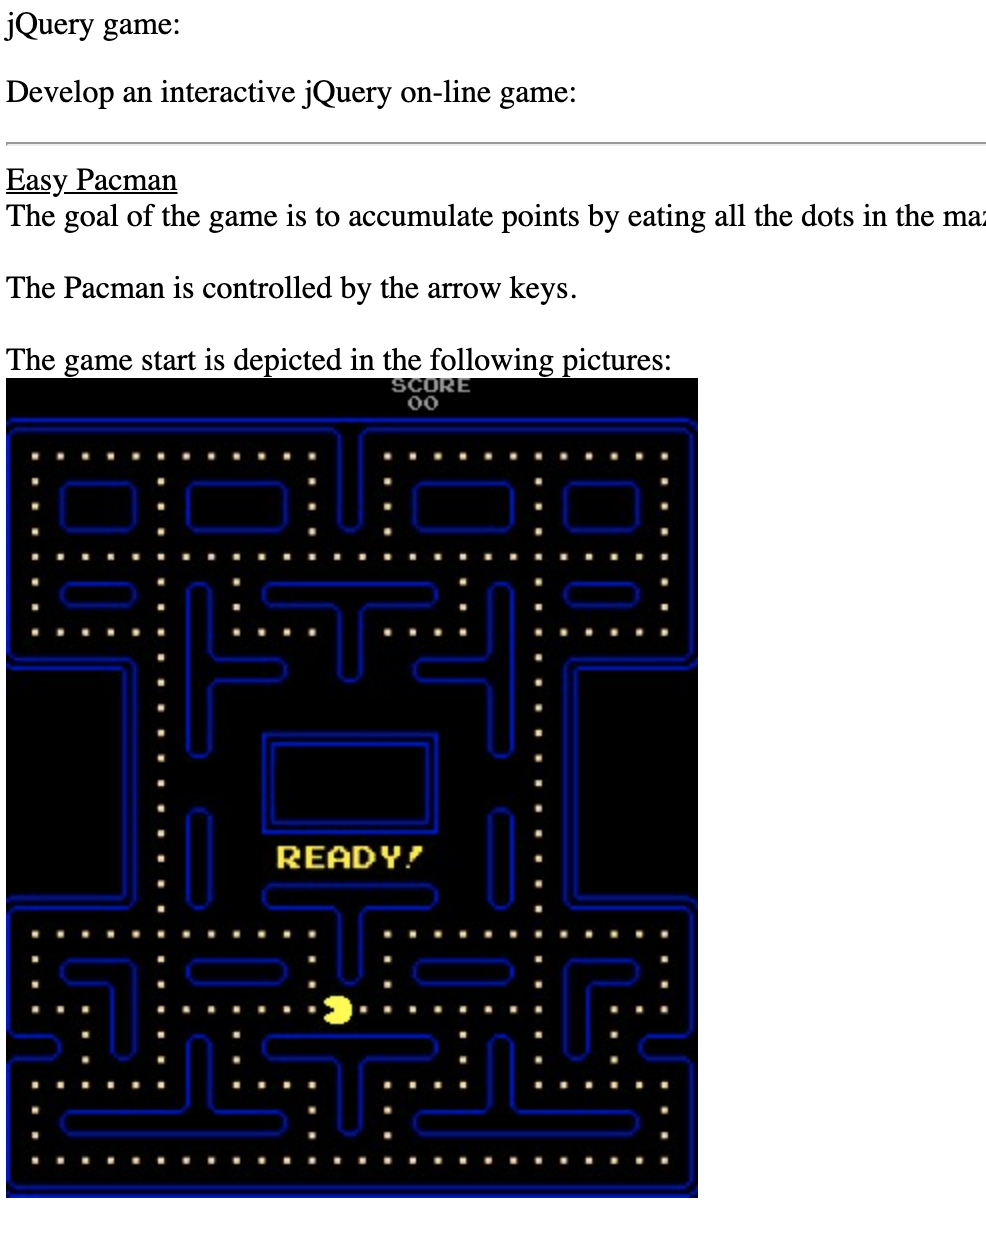 JQuery Game: Develop An Interactive JQuery On-line